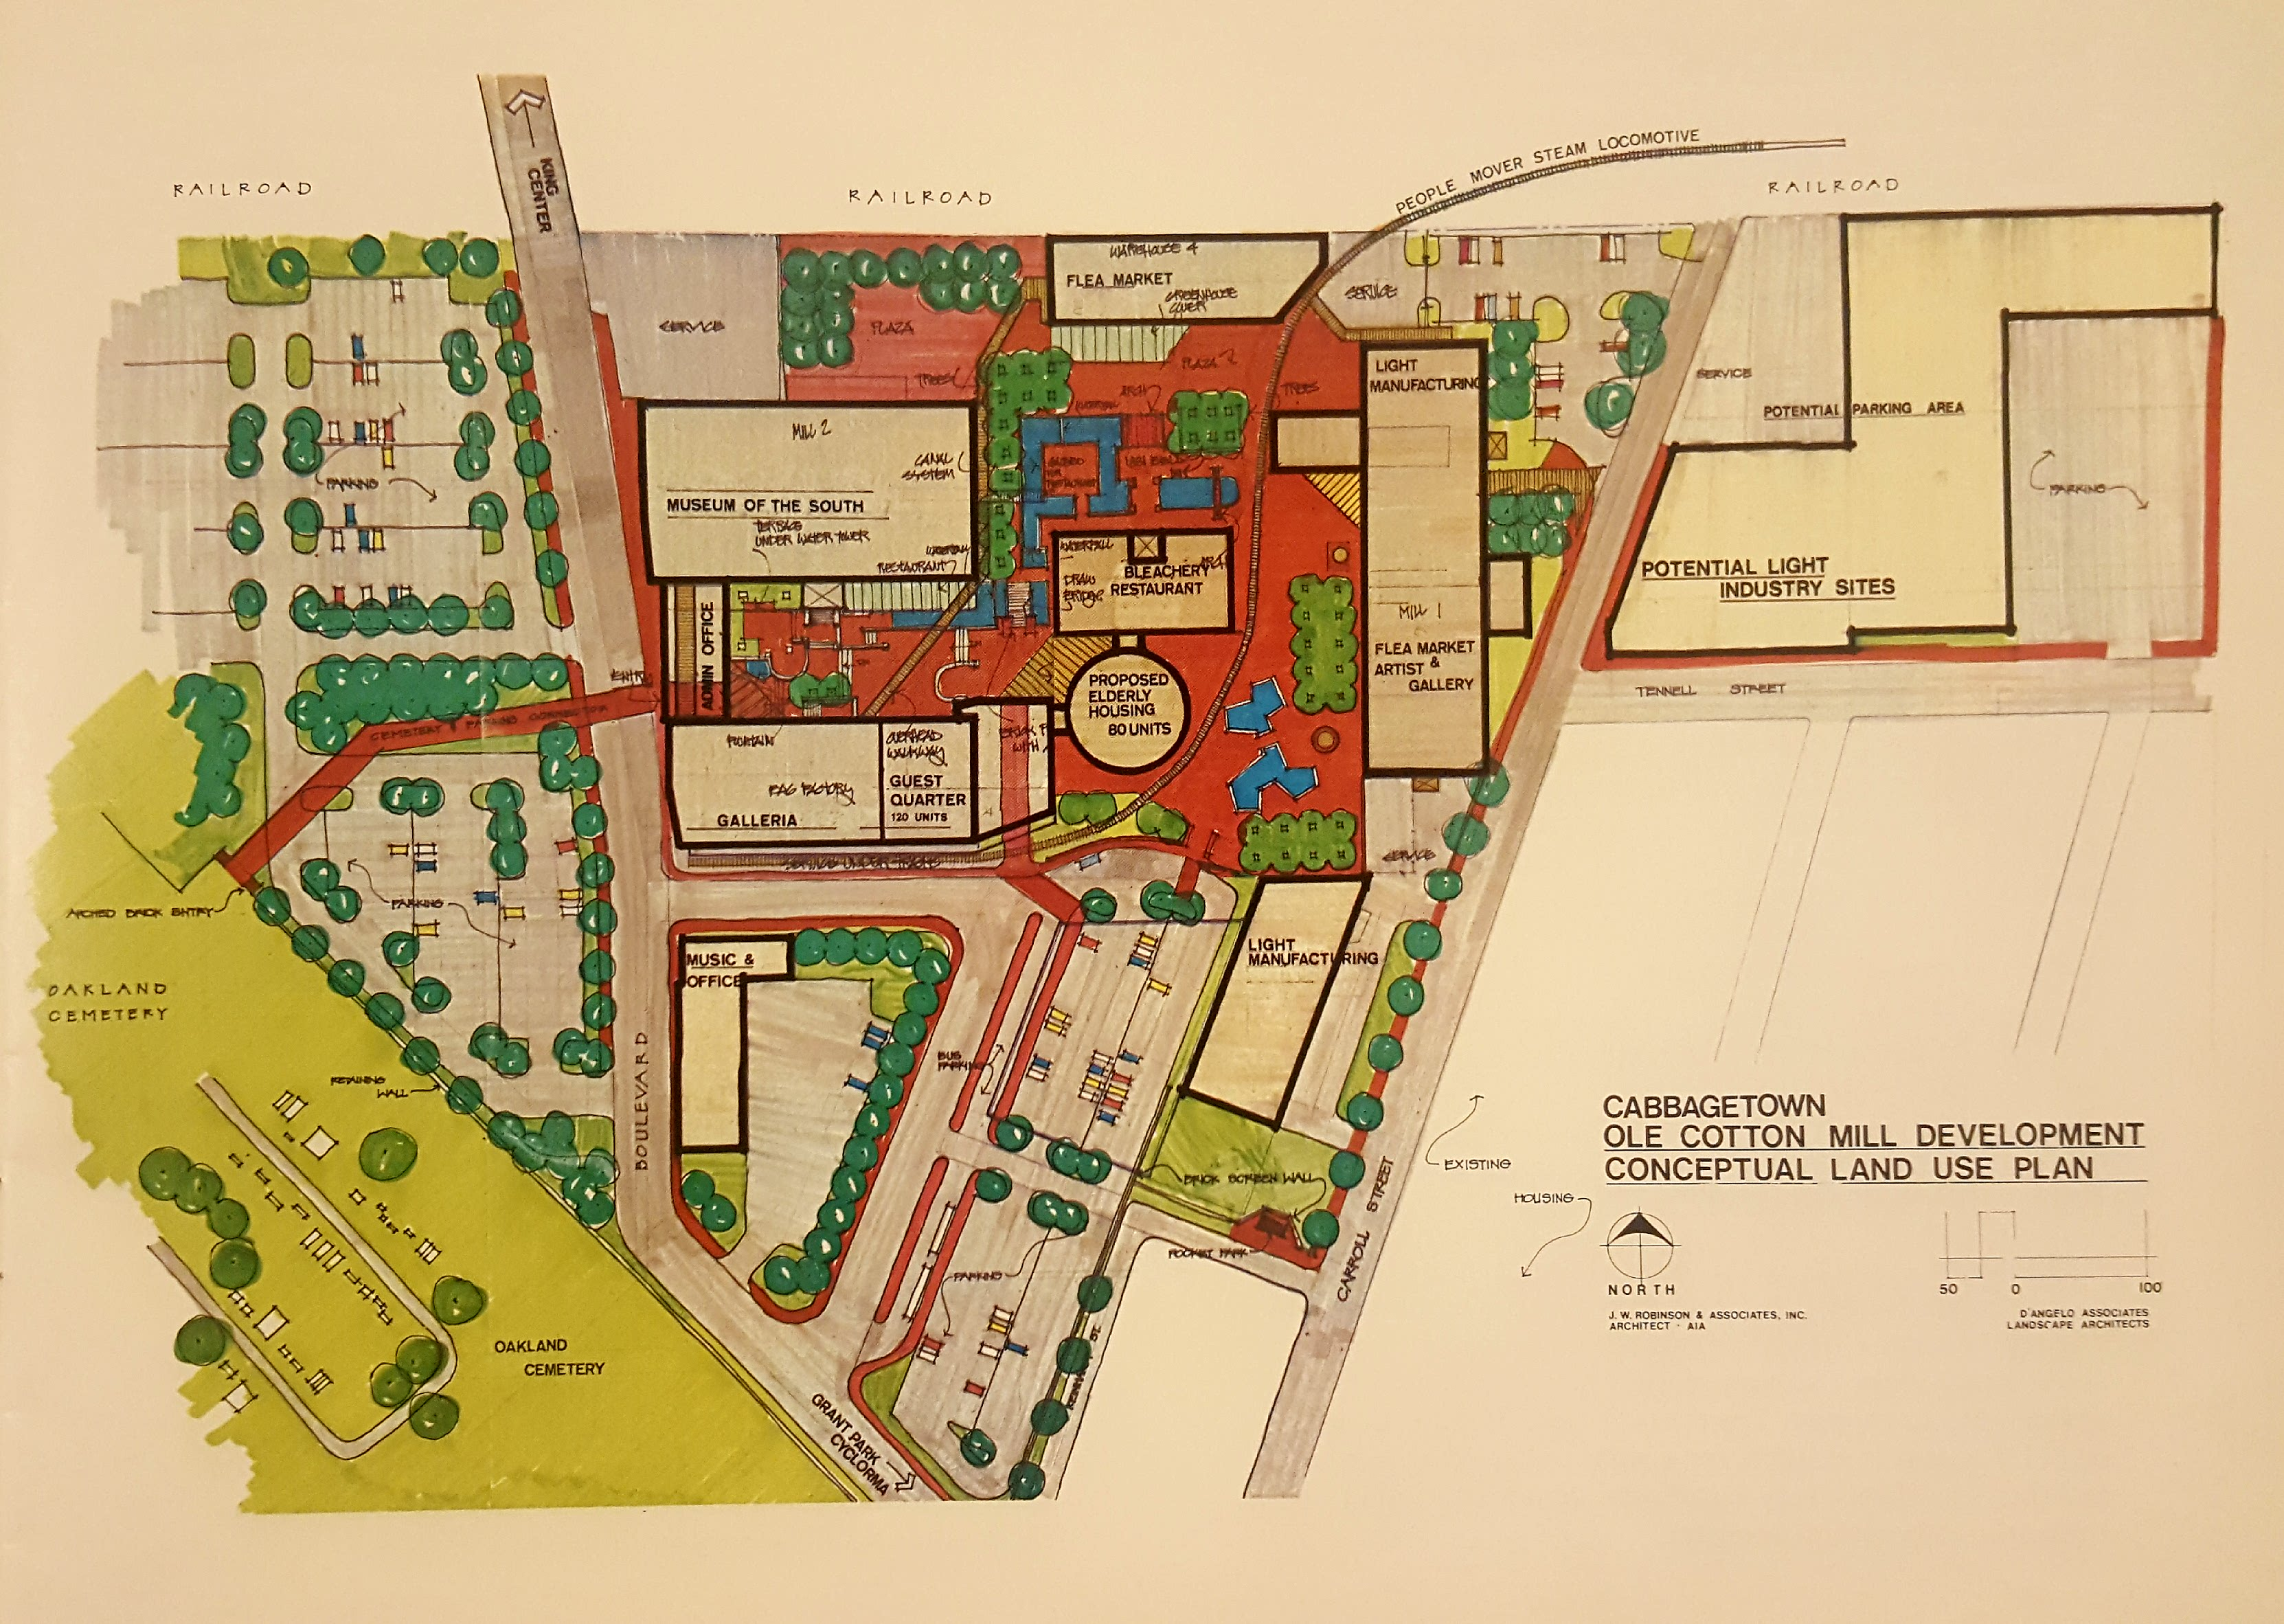 An early blueprint of the plan to revitalize Cabbagetown's Fulton Cotton and Bag Mill with restaurants, retail, office space, and more.